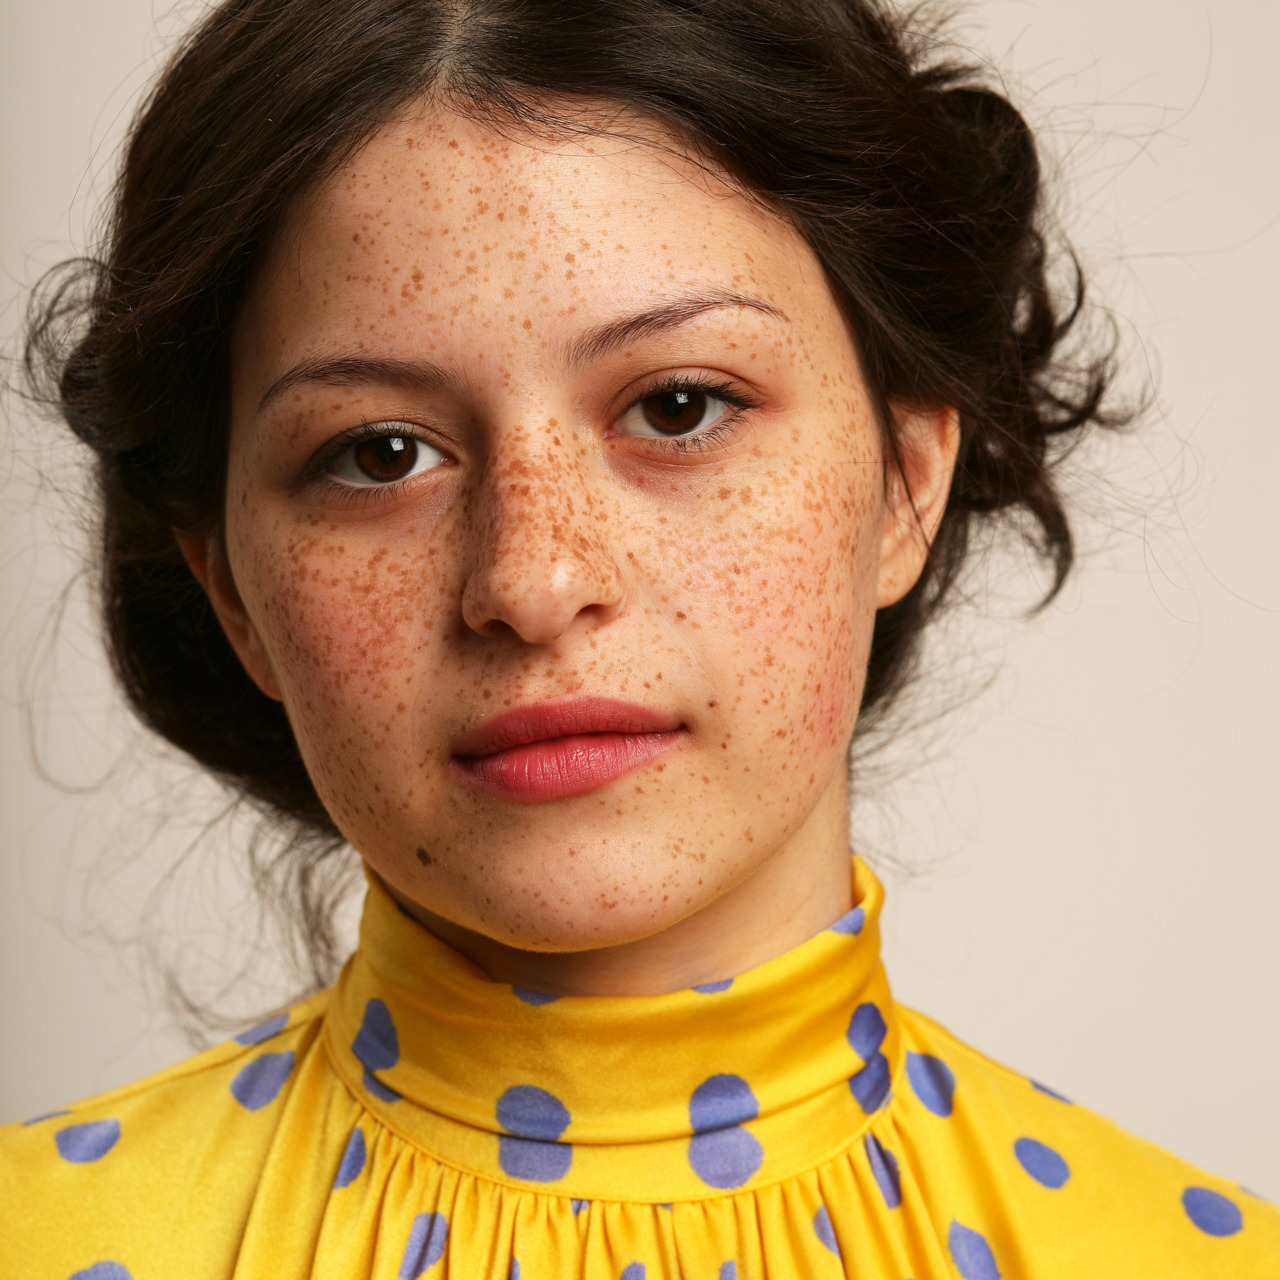 Simply Stunning - Alia Shawkat aka Maeby Funke from Arrested Developement